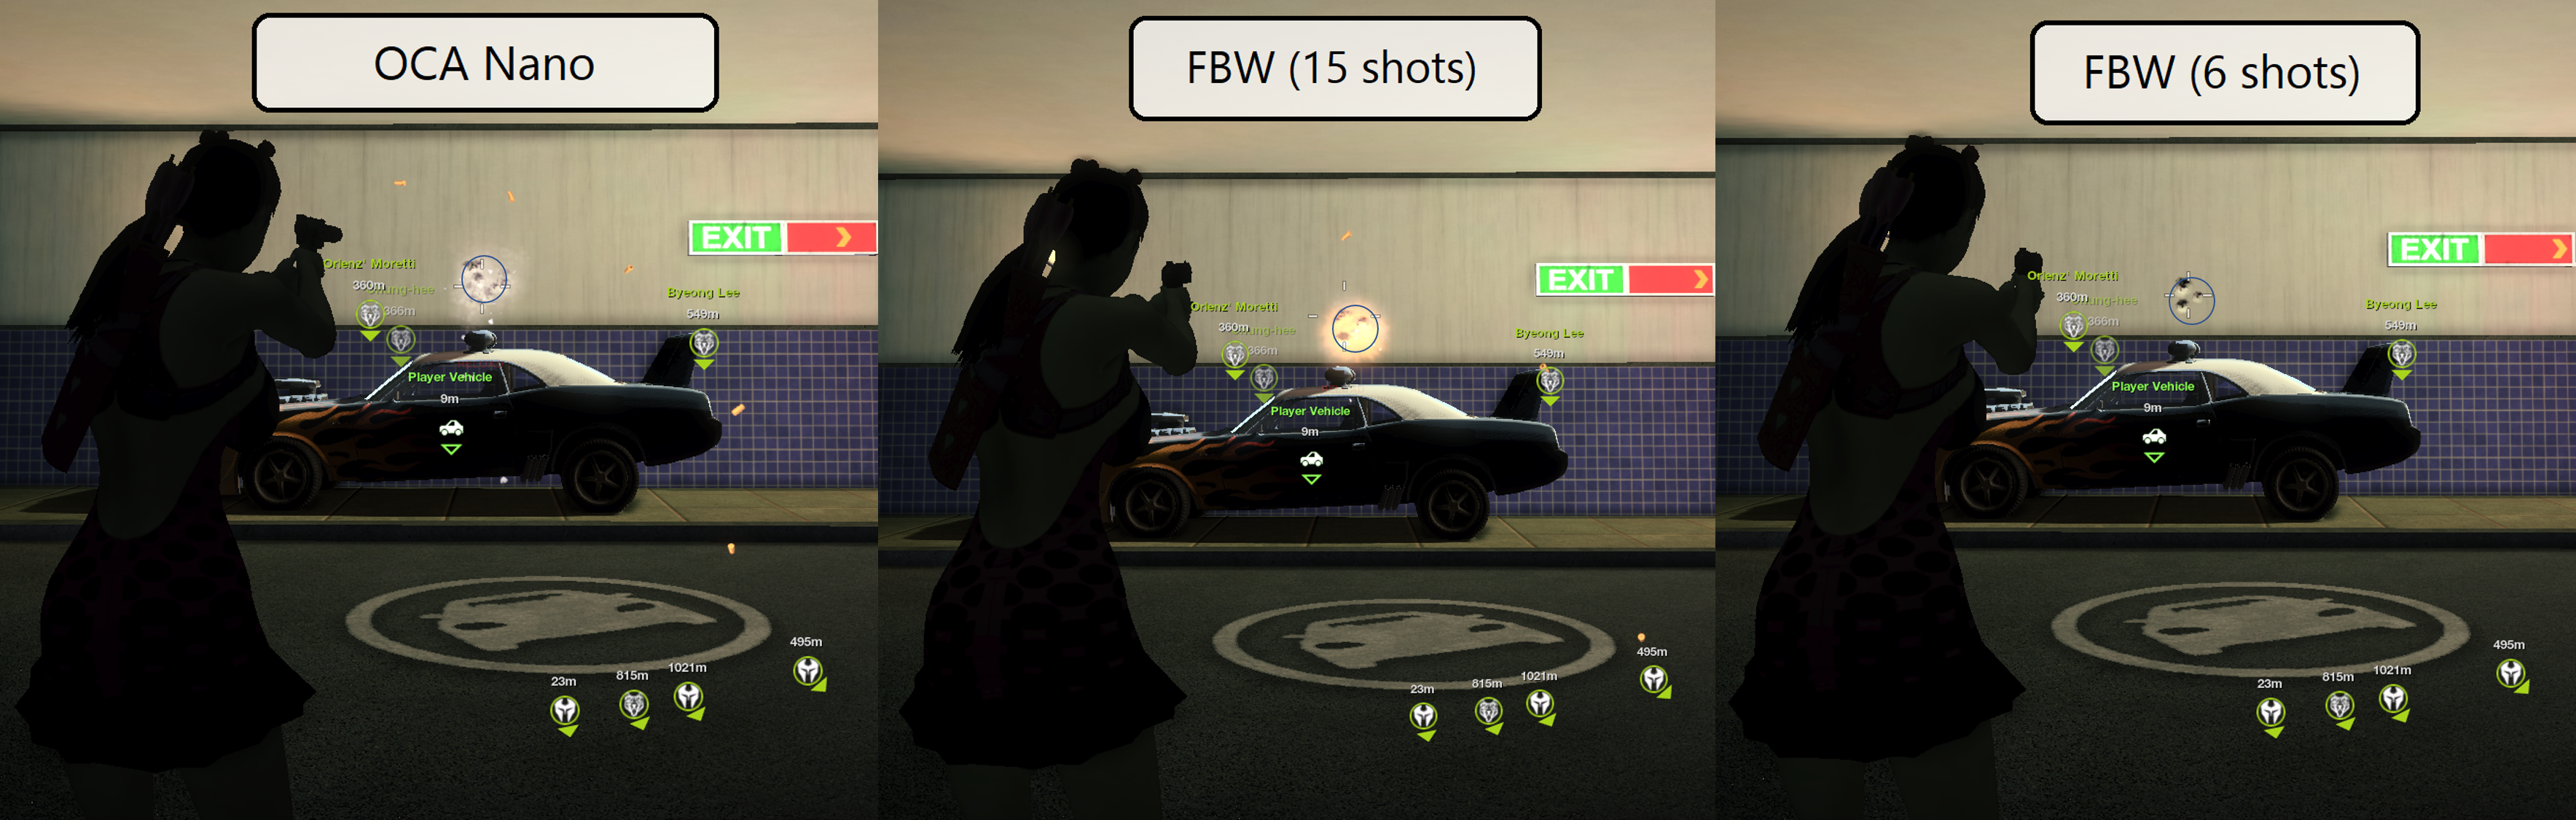 PistolAccuracyTest4.png